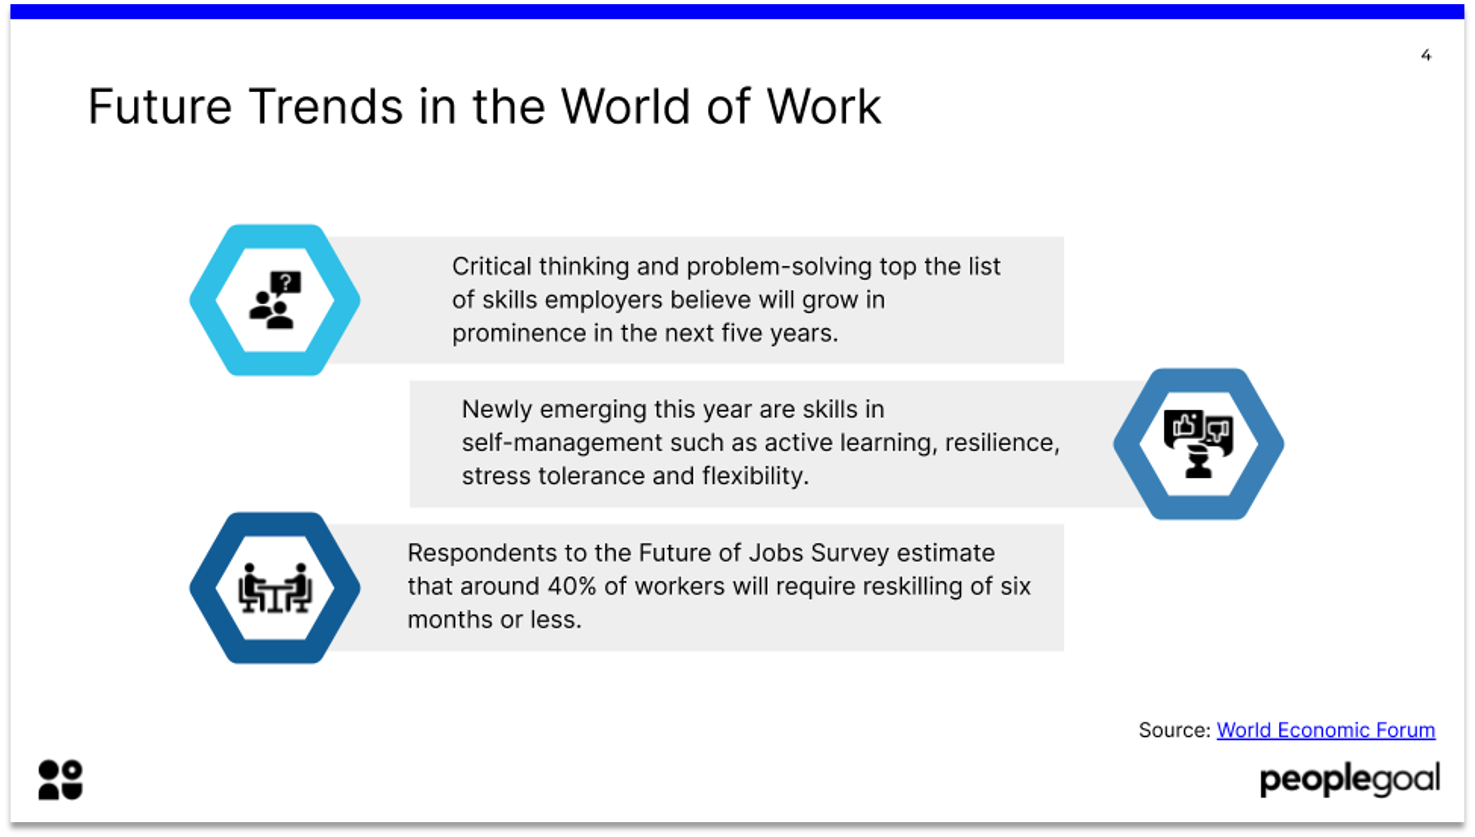 Future Trends in the World of Work